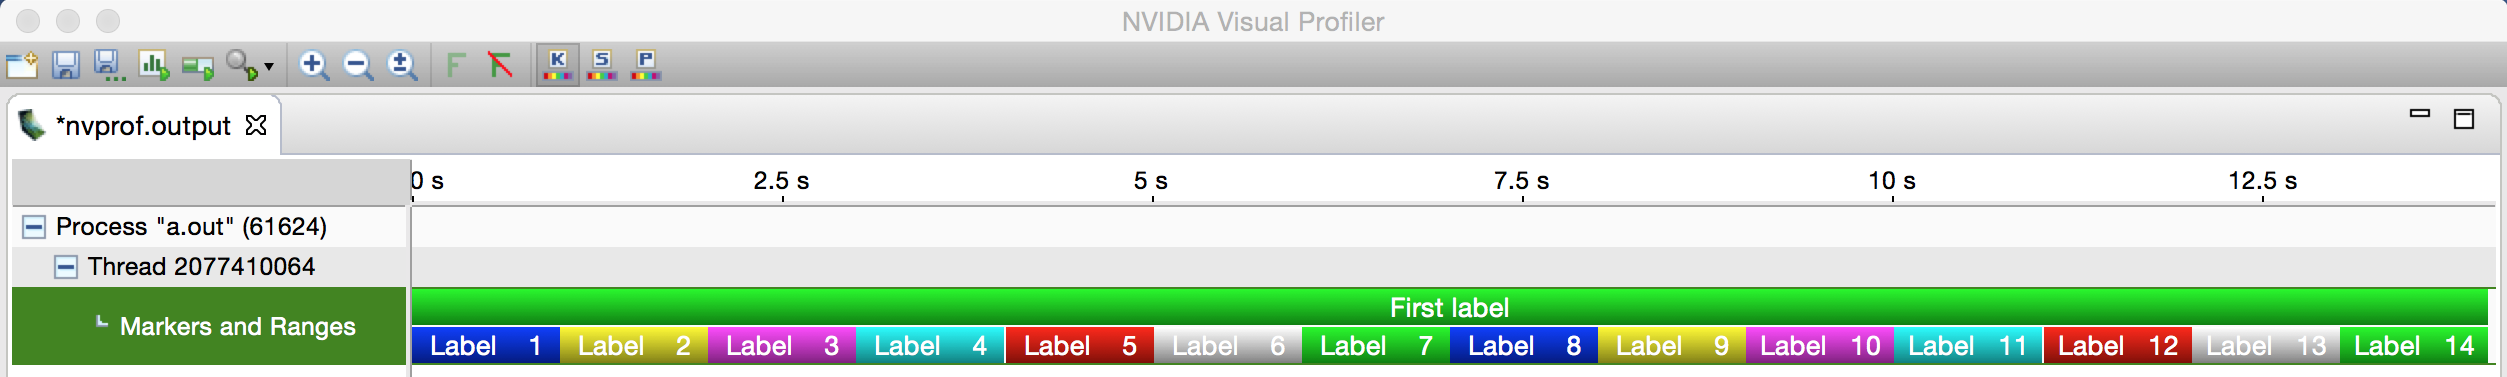 Figure 1: The NVIDIA Visual Profiler (NVVP) profile timeline showing custom ranges and labels inserted using NVTX.